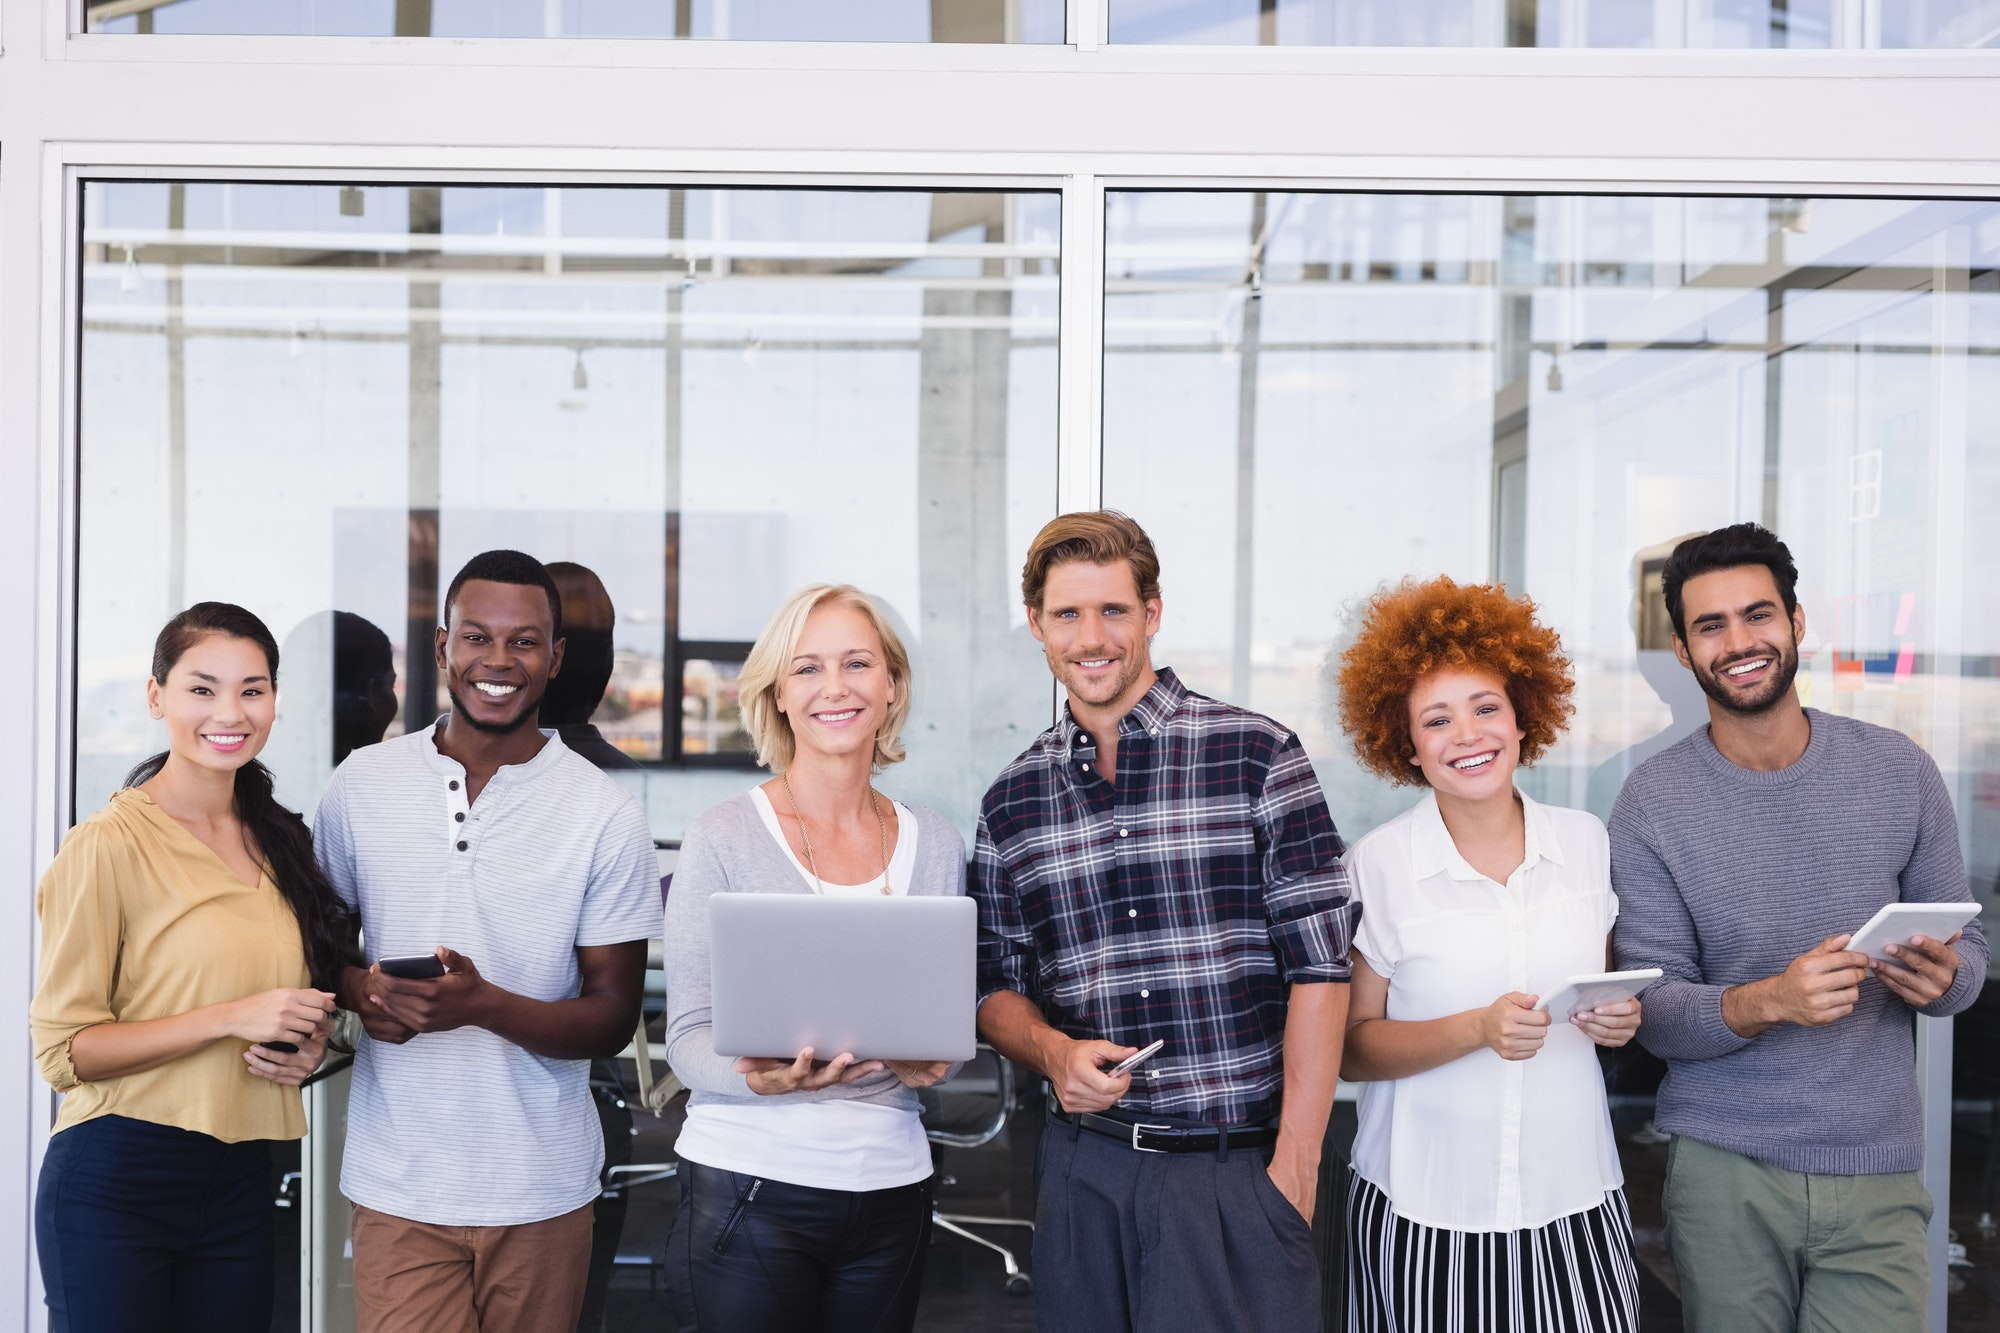 Parkwijck portrait-of-smiling-business-people-with-different-technologies RPO